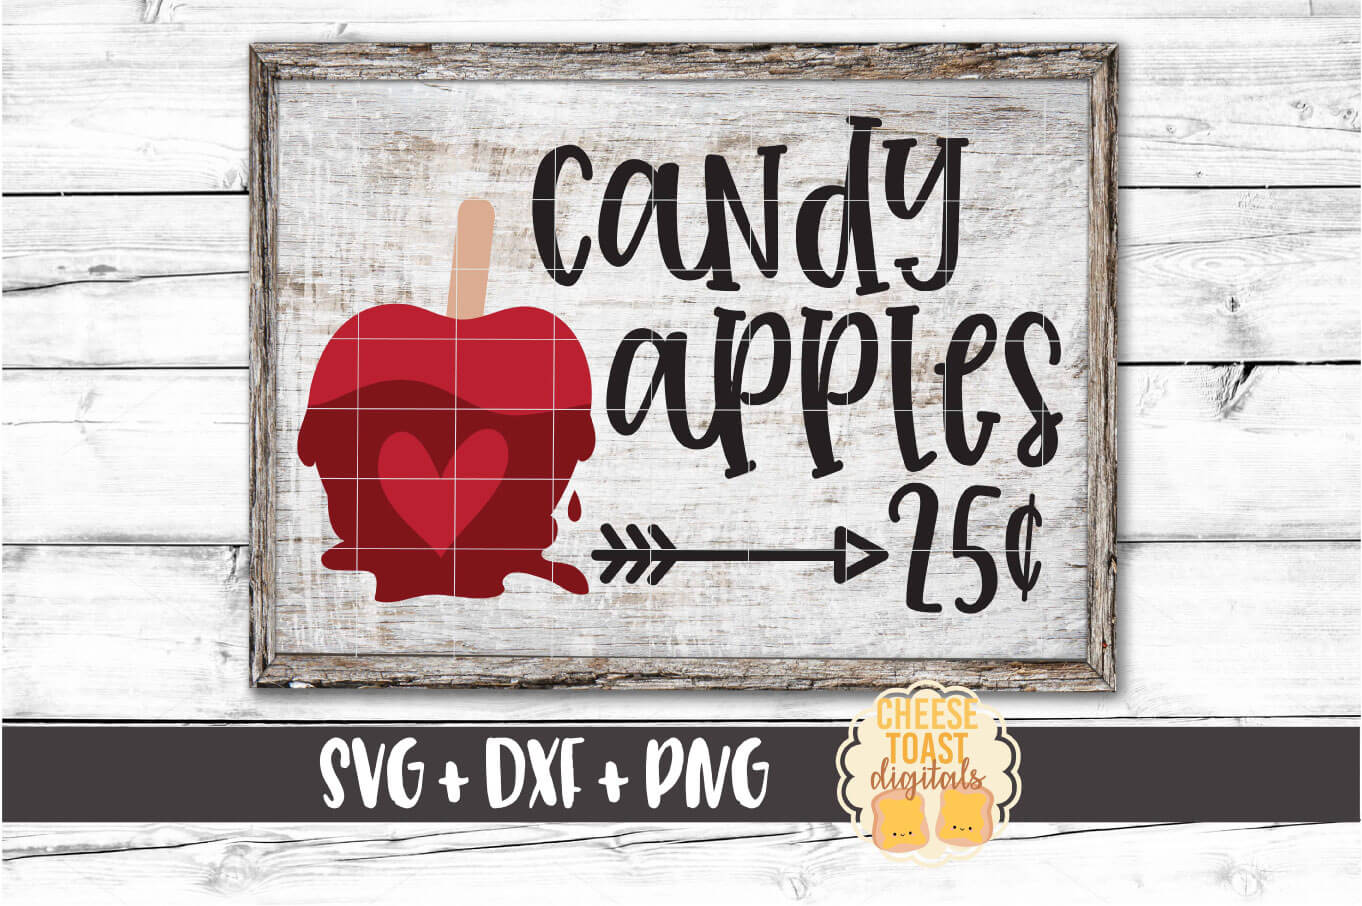 Candy Apples 25 Cents - Fall Sign SVG PNG DXF Cut Files example image 1